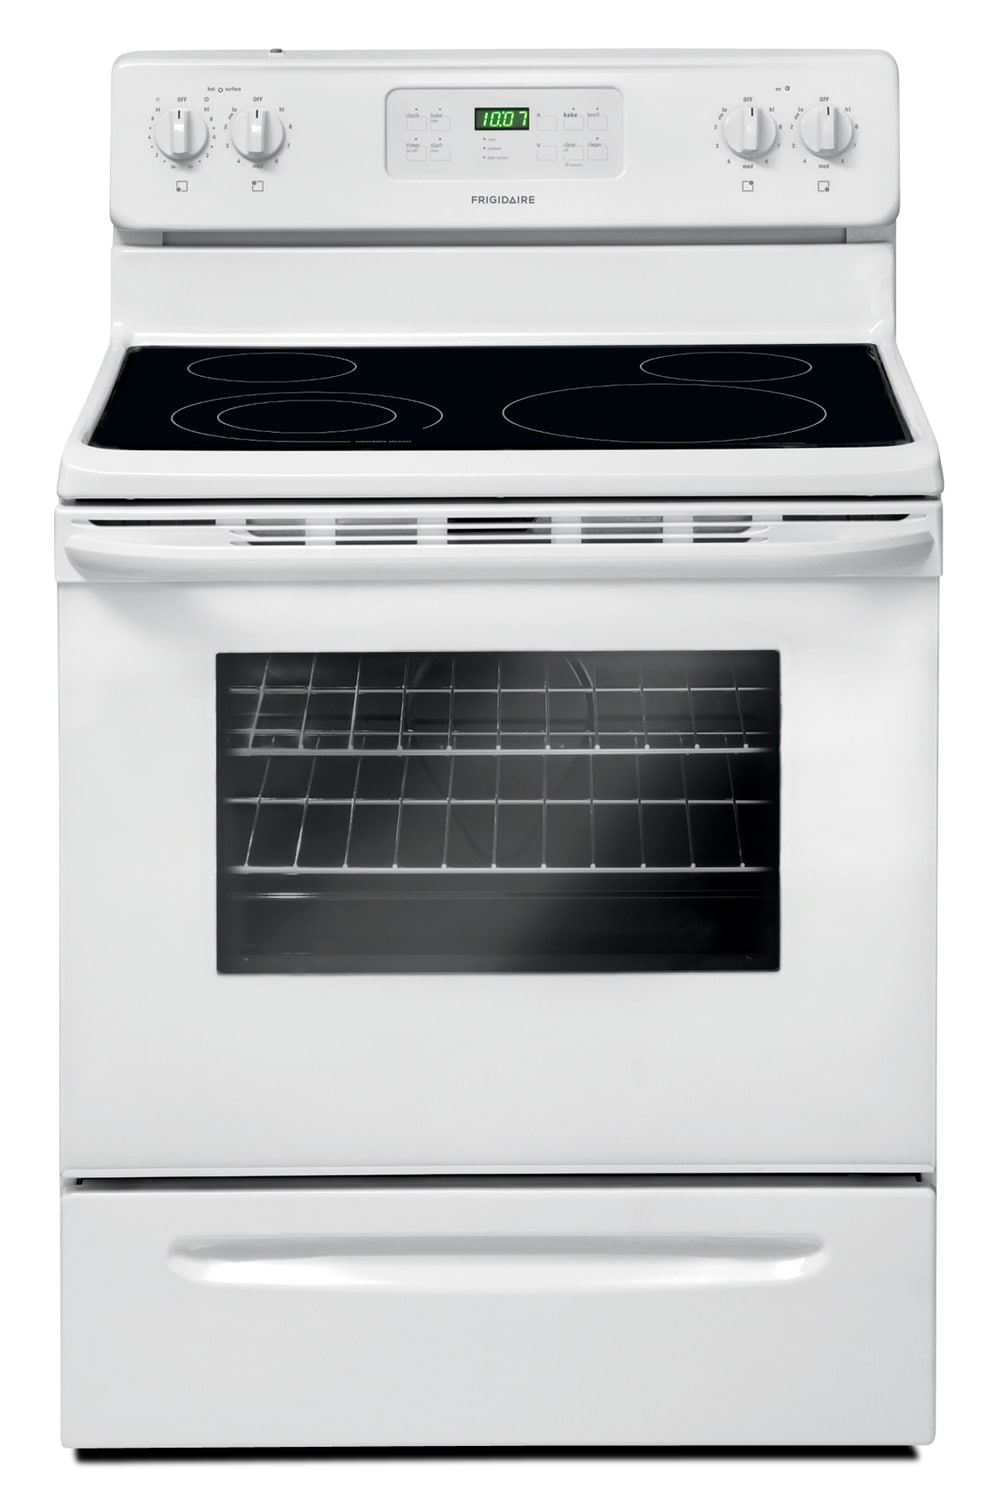 Cooking Products - Frigidaire White Freestanding Electric Range (5.3 Cu. Ft.) - CFEF3018LW